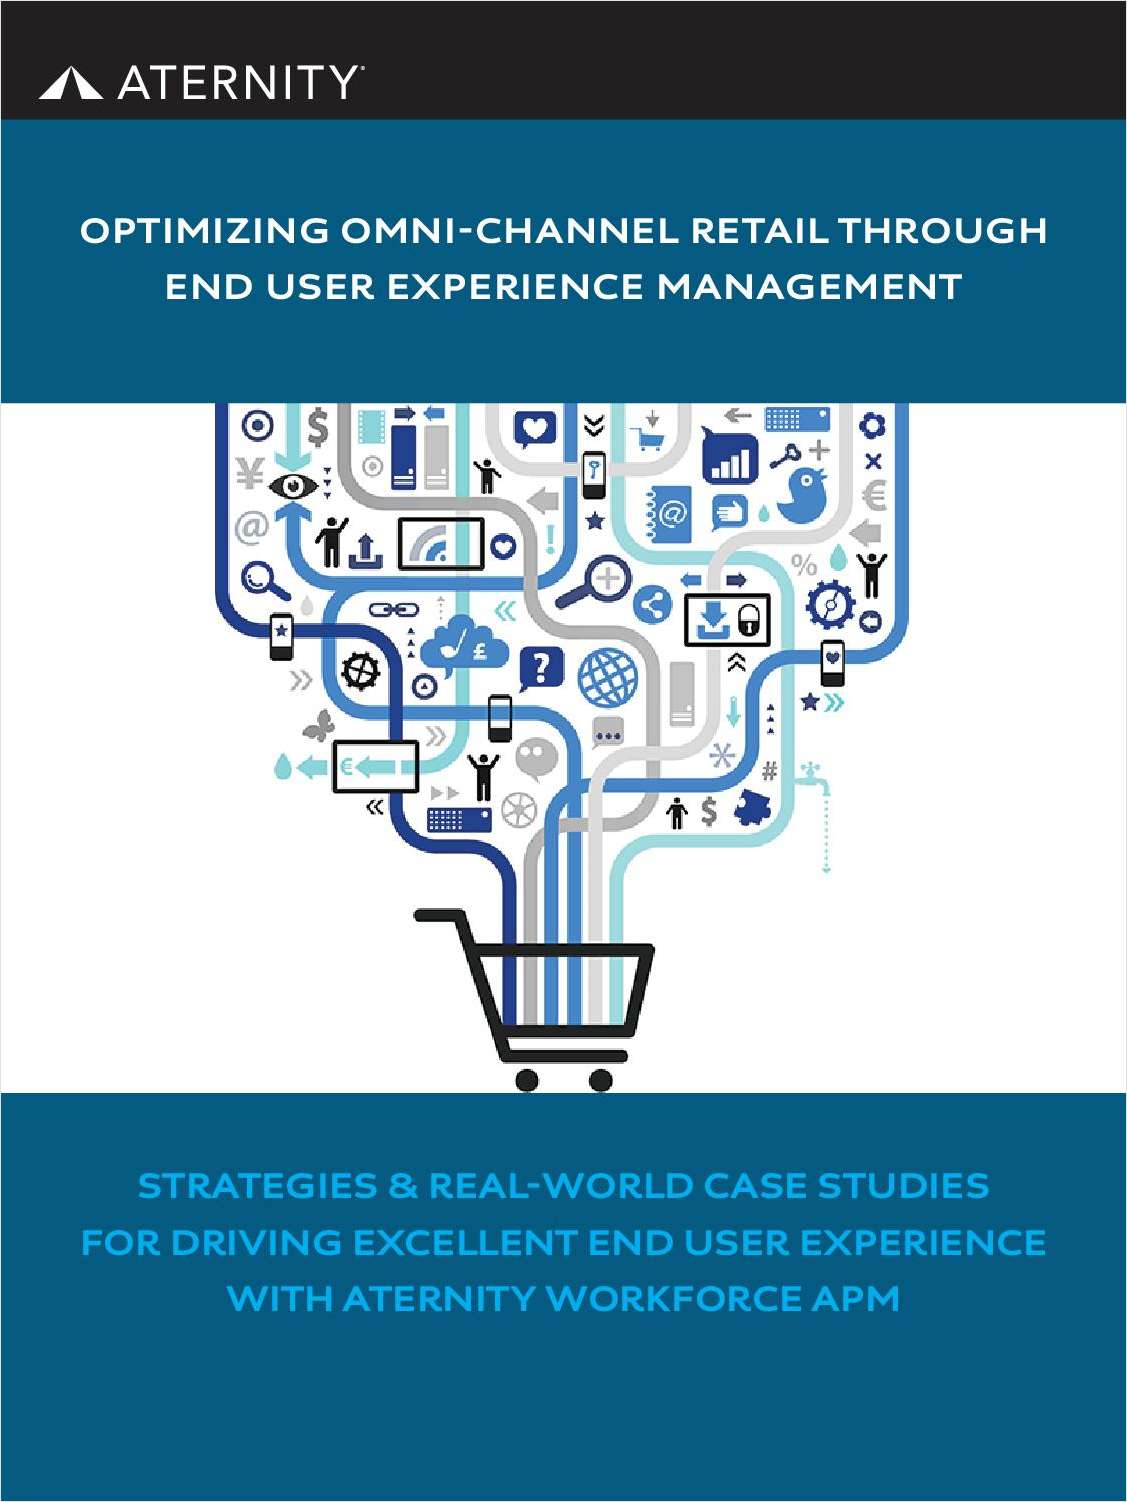 Optimizing Omni-channel Retail through End User Experience Management